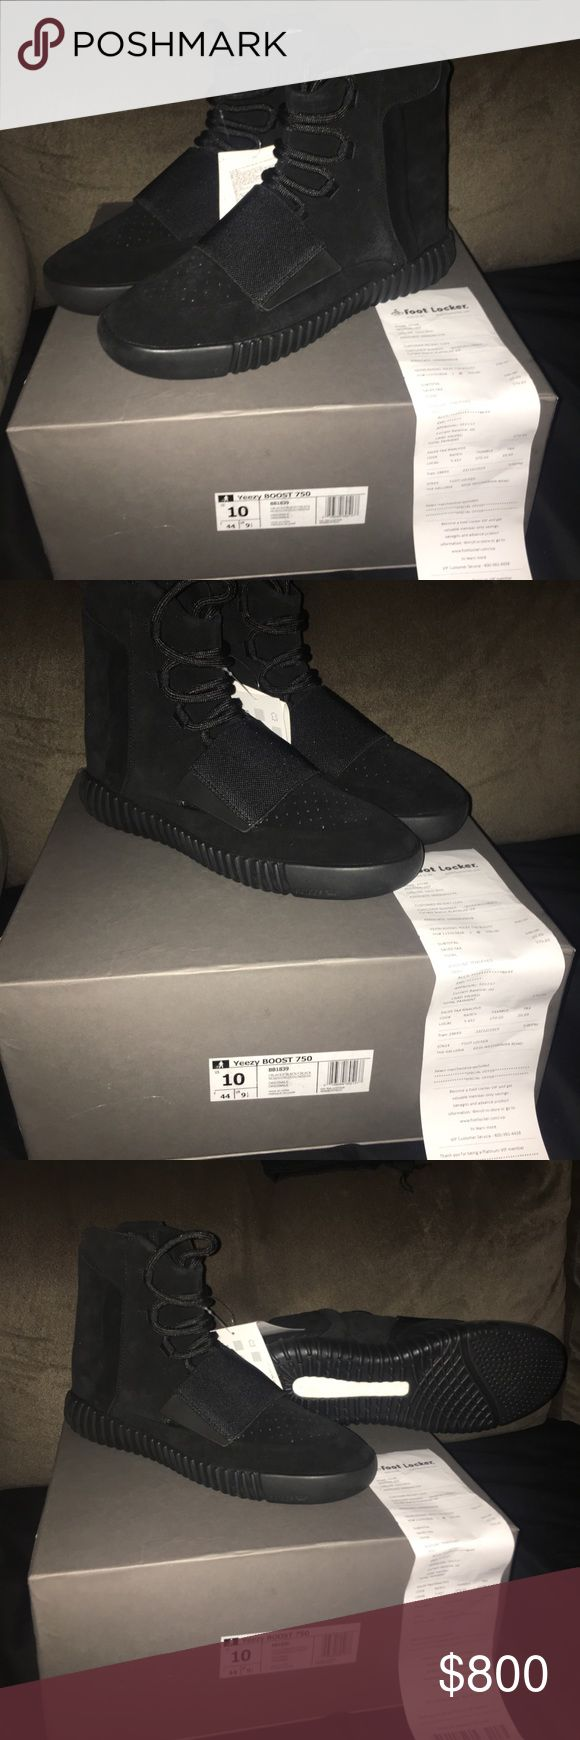 Yeezy boost 750 This is a pair of yeezy boost 750s all black. This pair is currently unavailable but if your looking for any pairs of yeezys I can help you get them at good prices just contact me if be glad to help. Not just 750s, 350s and 700s as well! adidas Shoes Sneakers